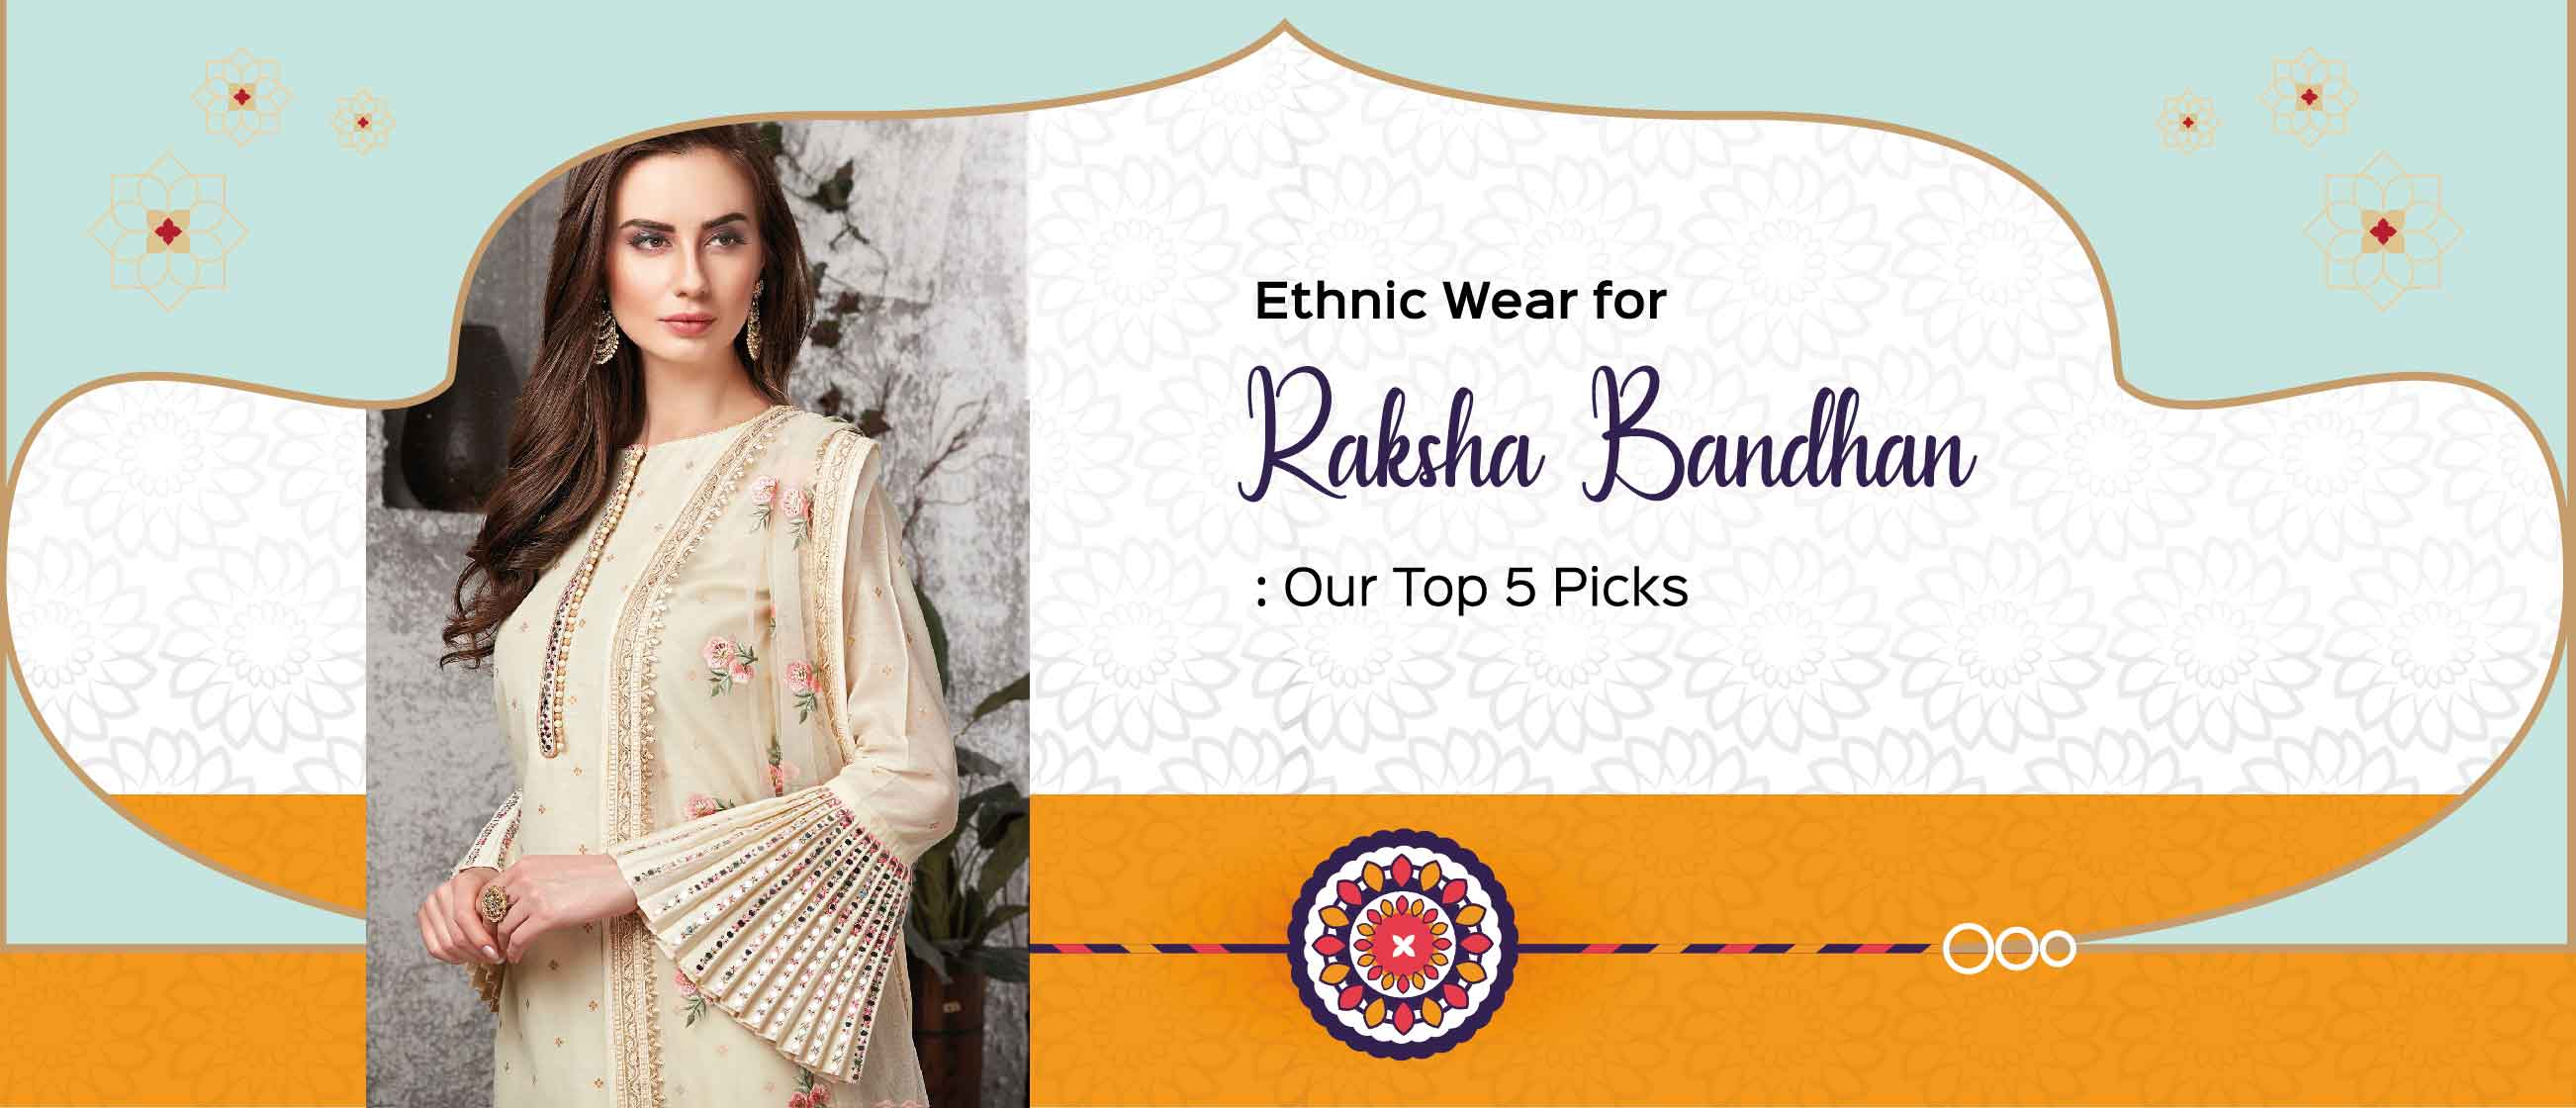 Ethnic Wear for Raksha Bandhan: Our Top 5 Picks